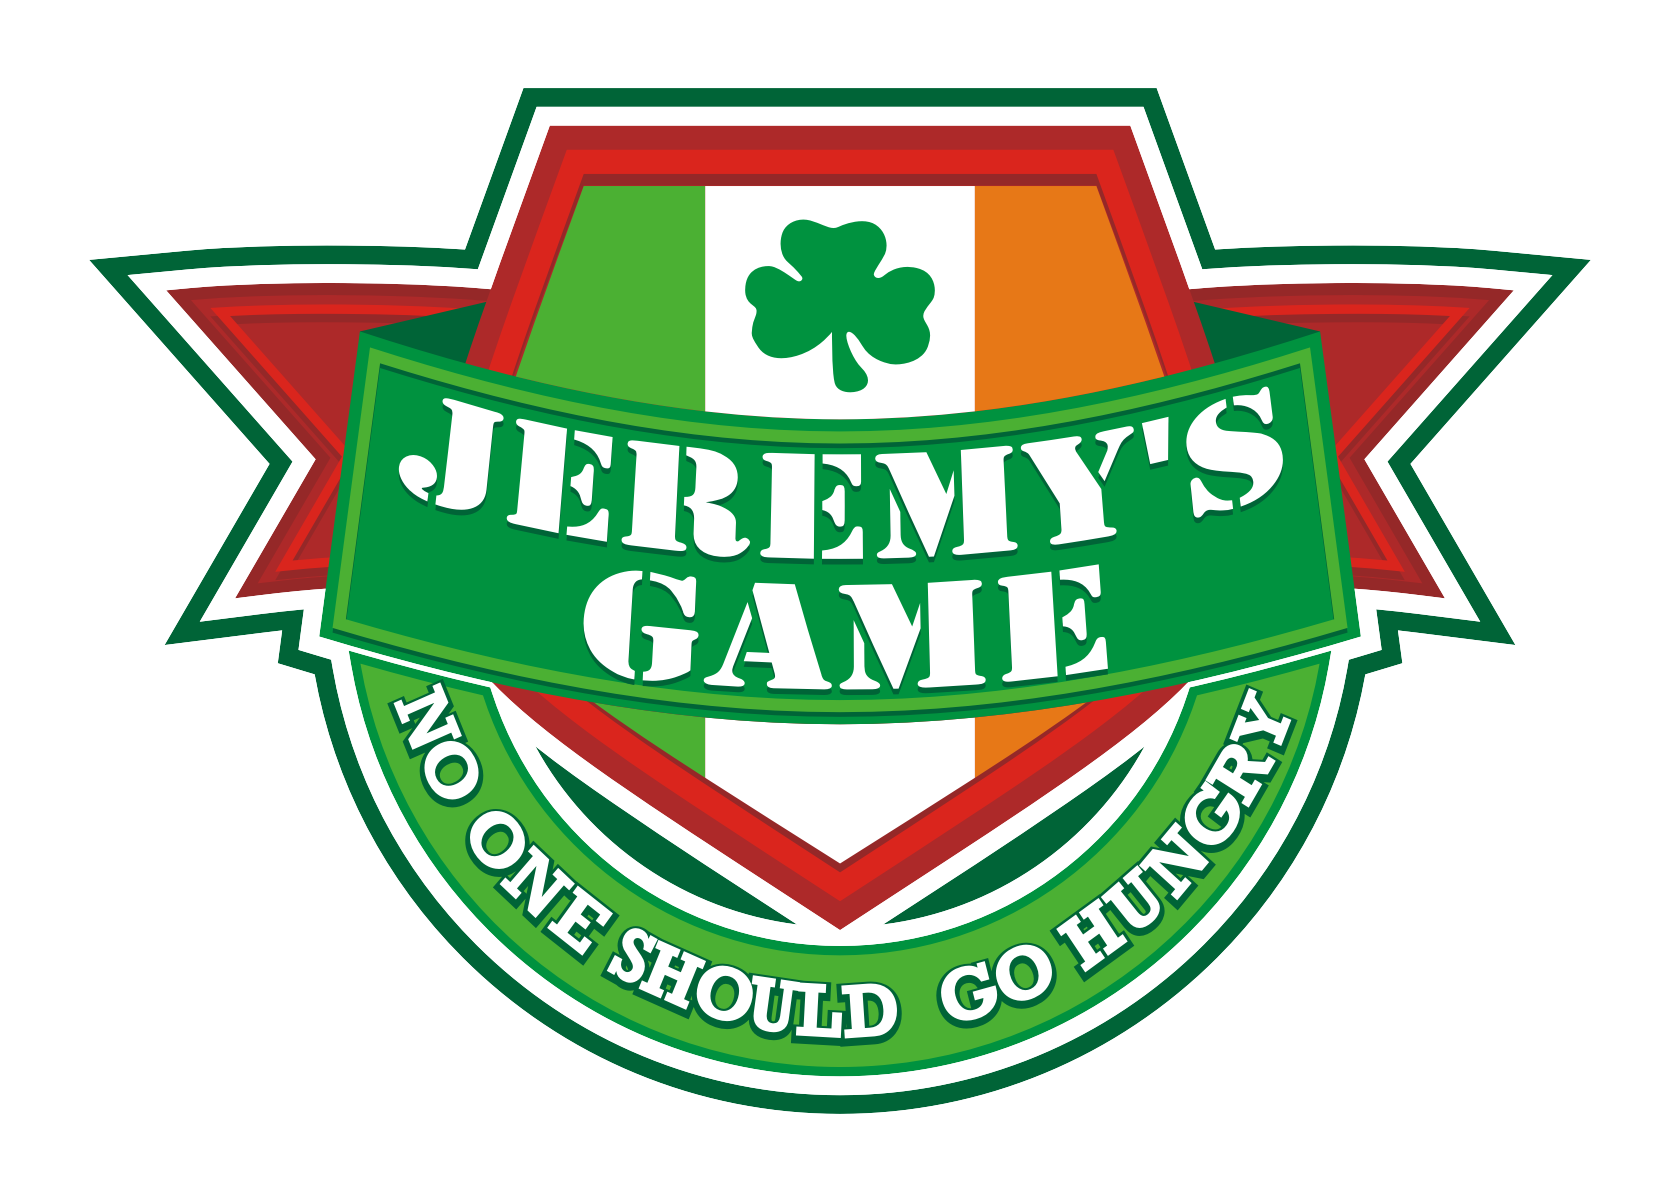 Jeremy's Game – Non Profit Helping Feed Those in Need